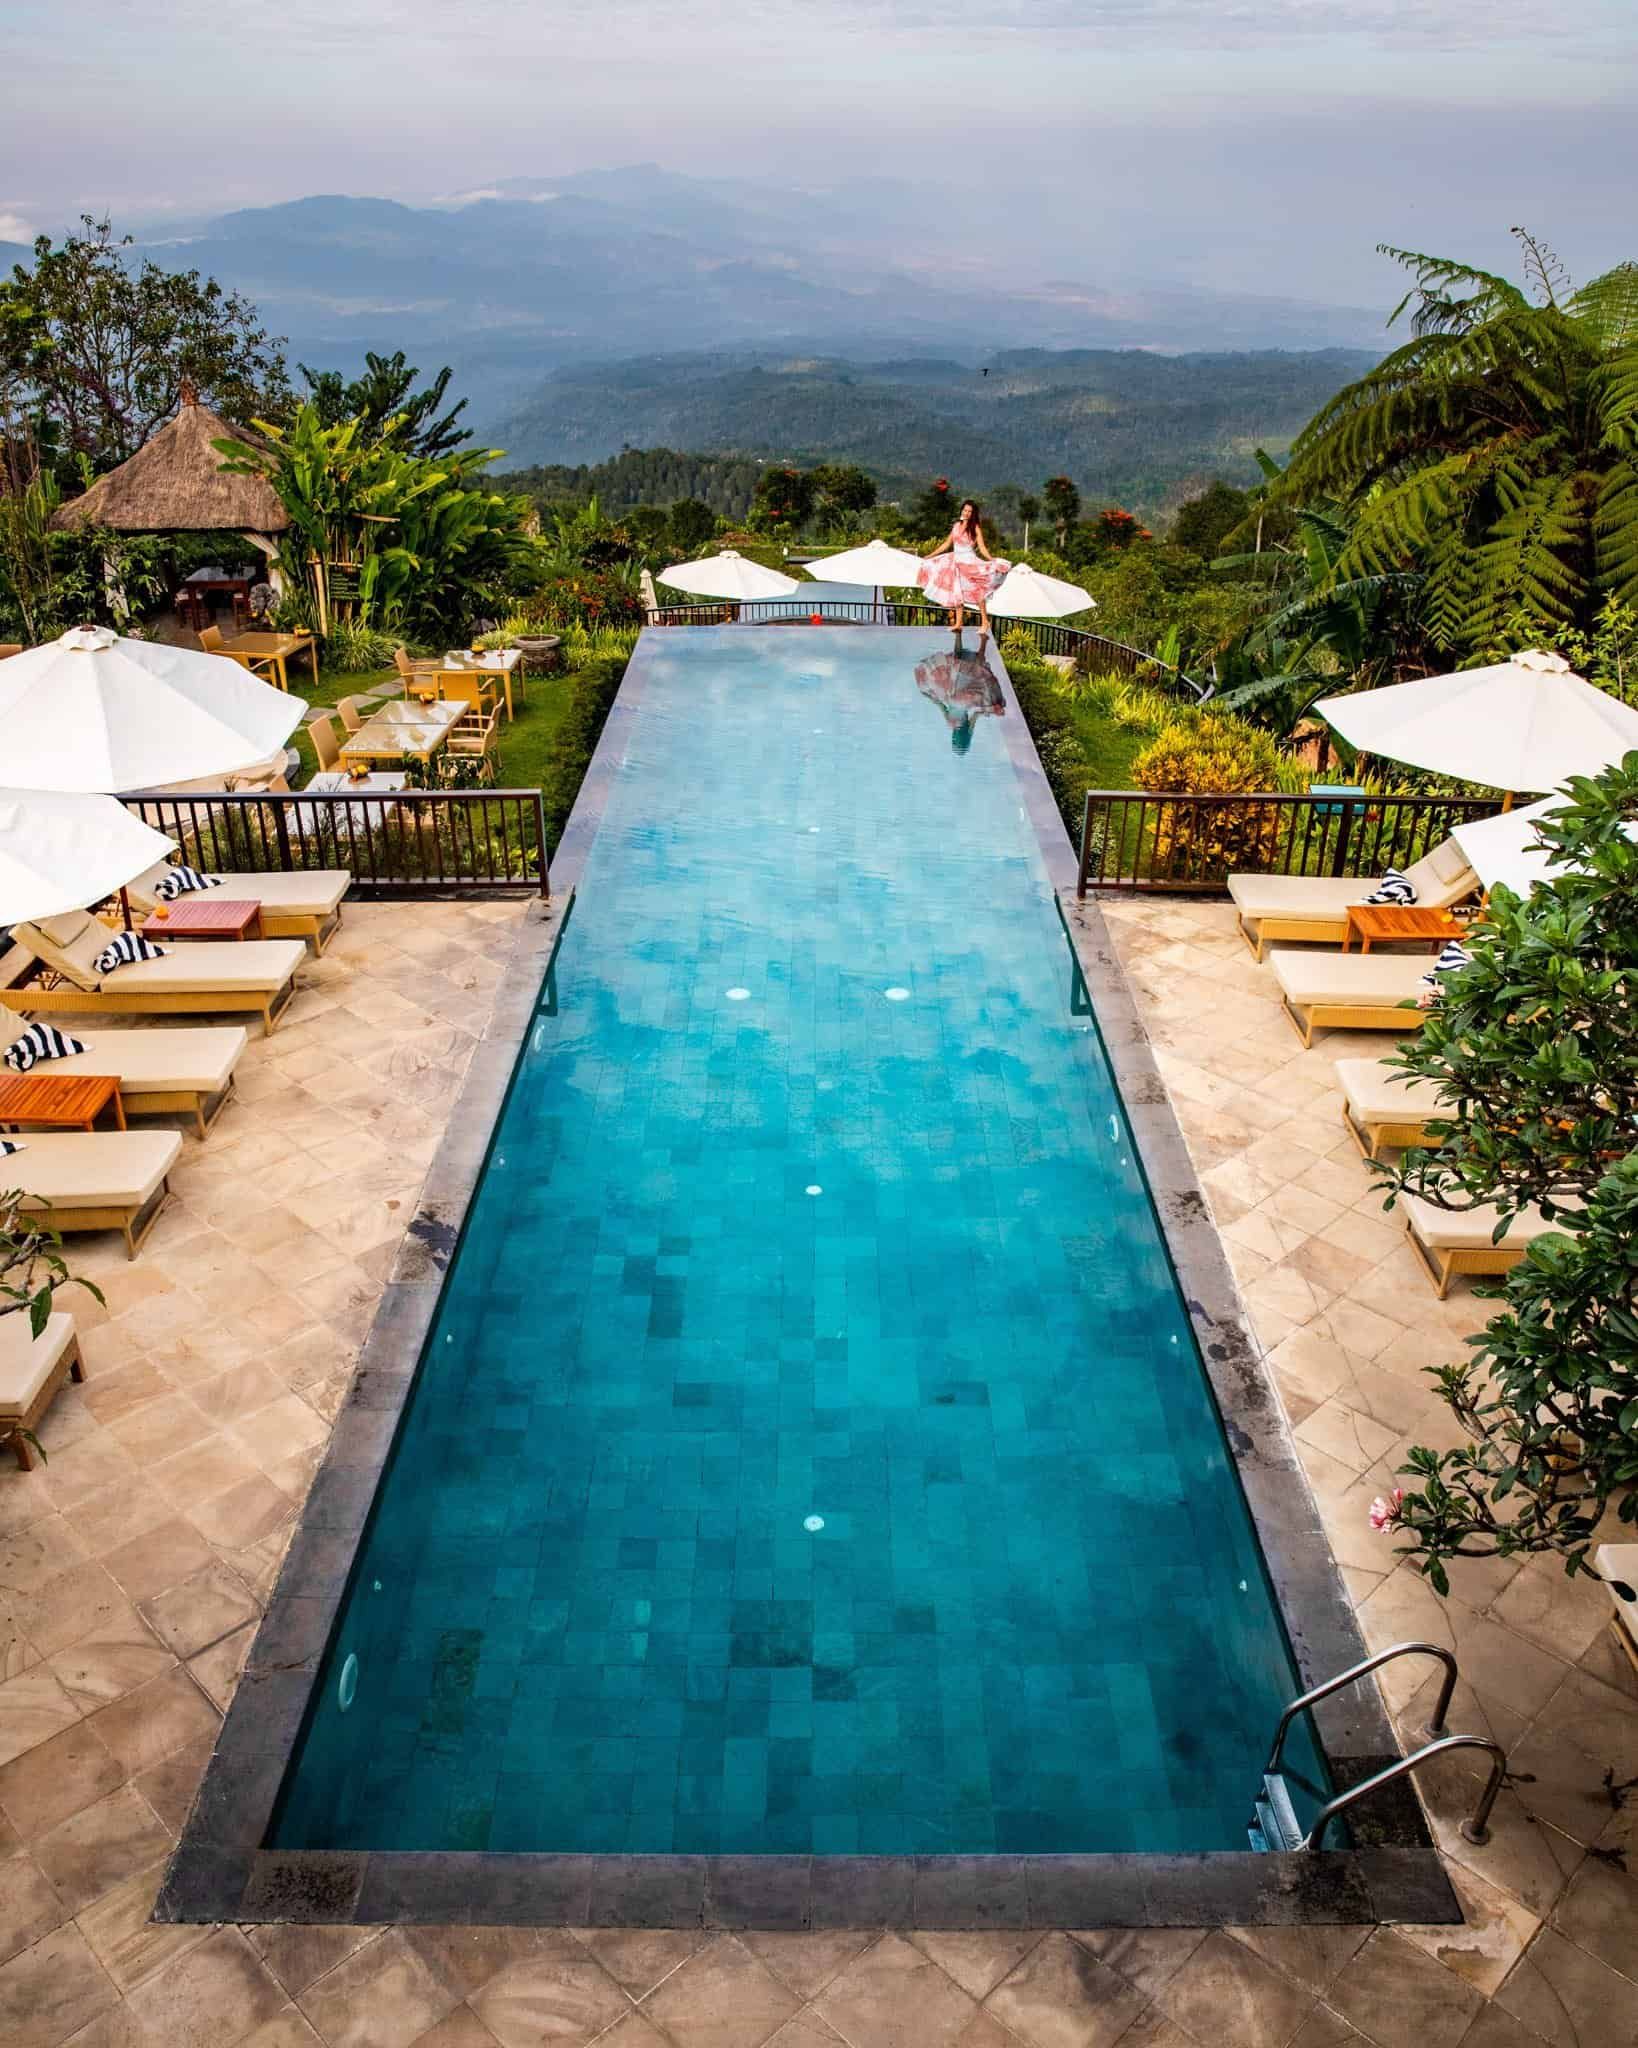 View of Infinity Pool at Munduk Moding Plantation Bali - The Next Trip